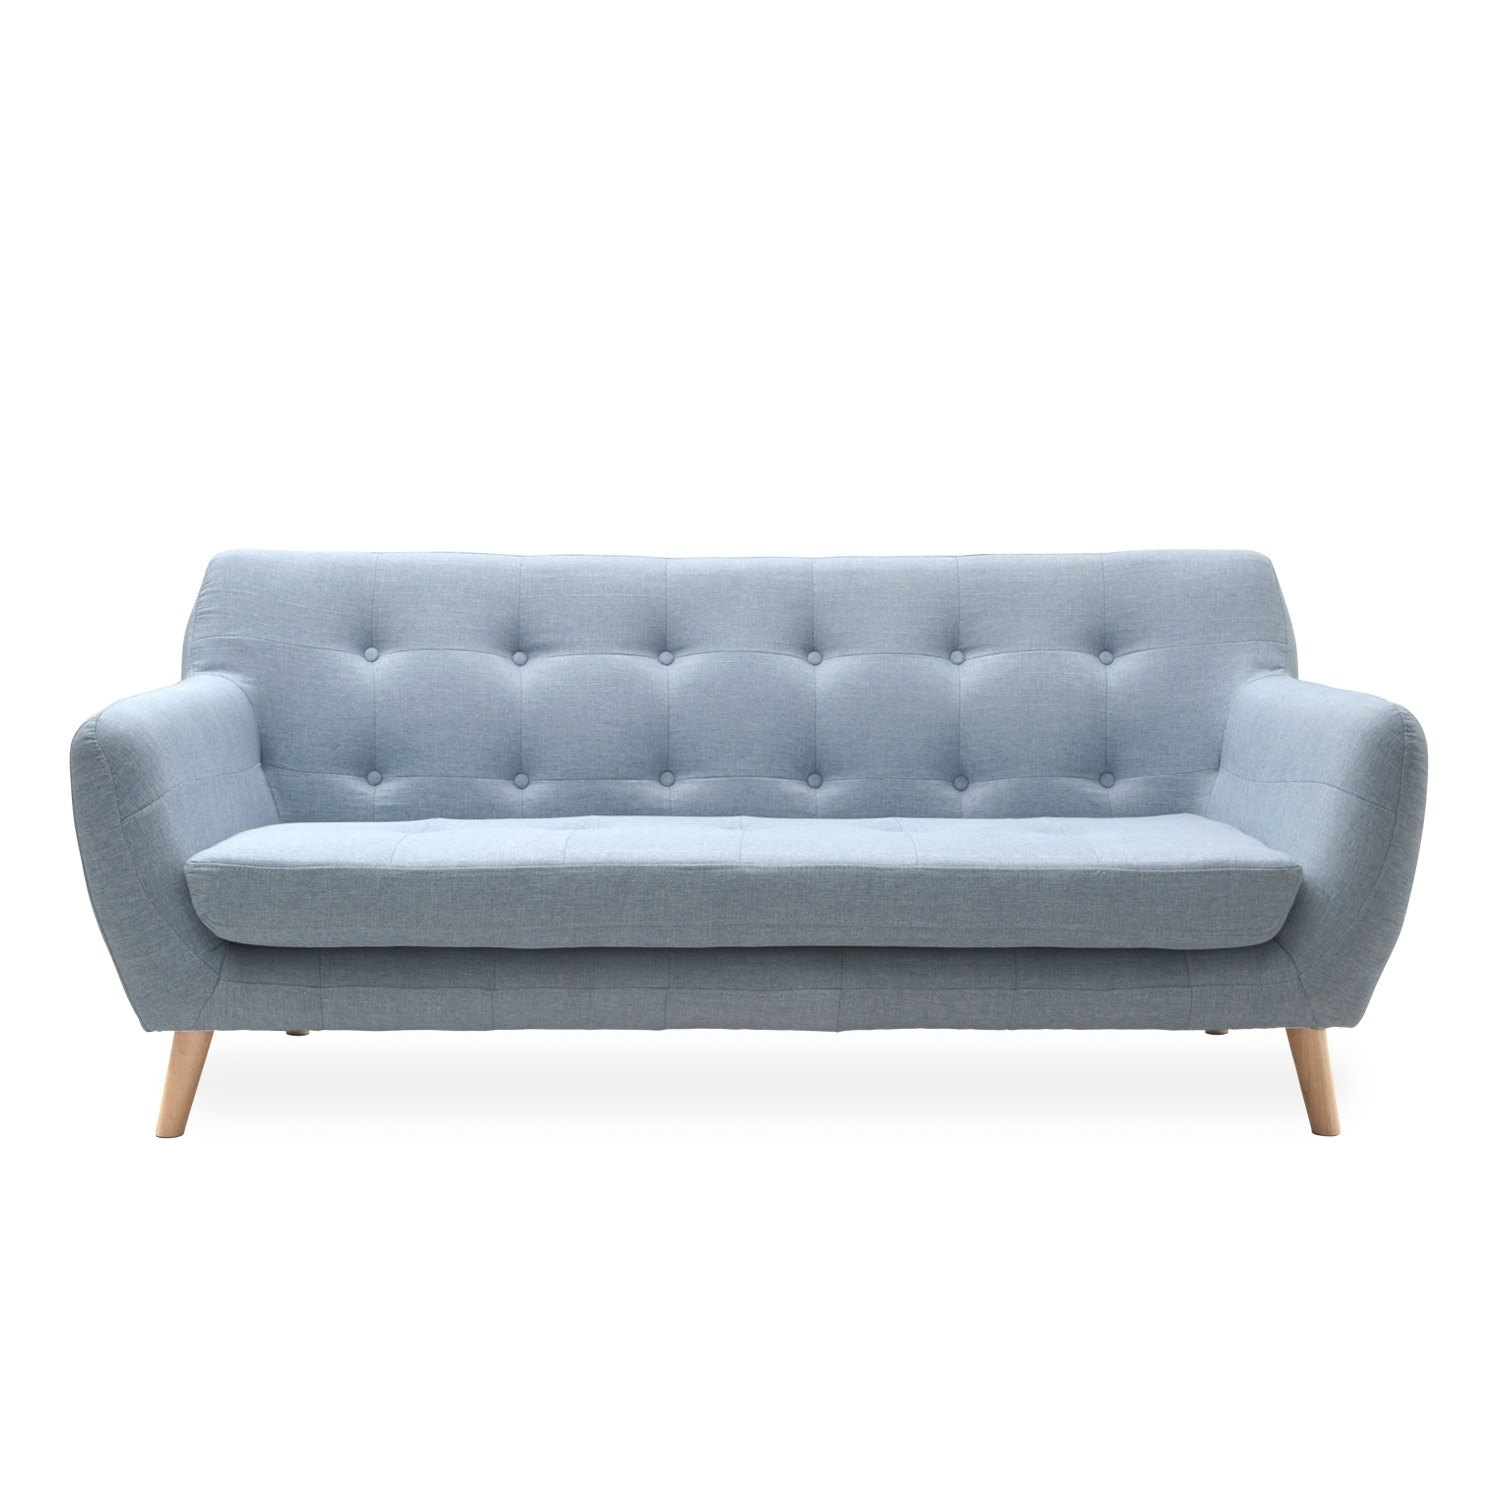 Sofa vintage barato sof s vintage sofa retro sofa for Muebles nordicos economicos